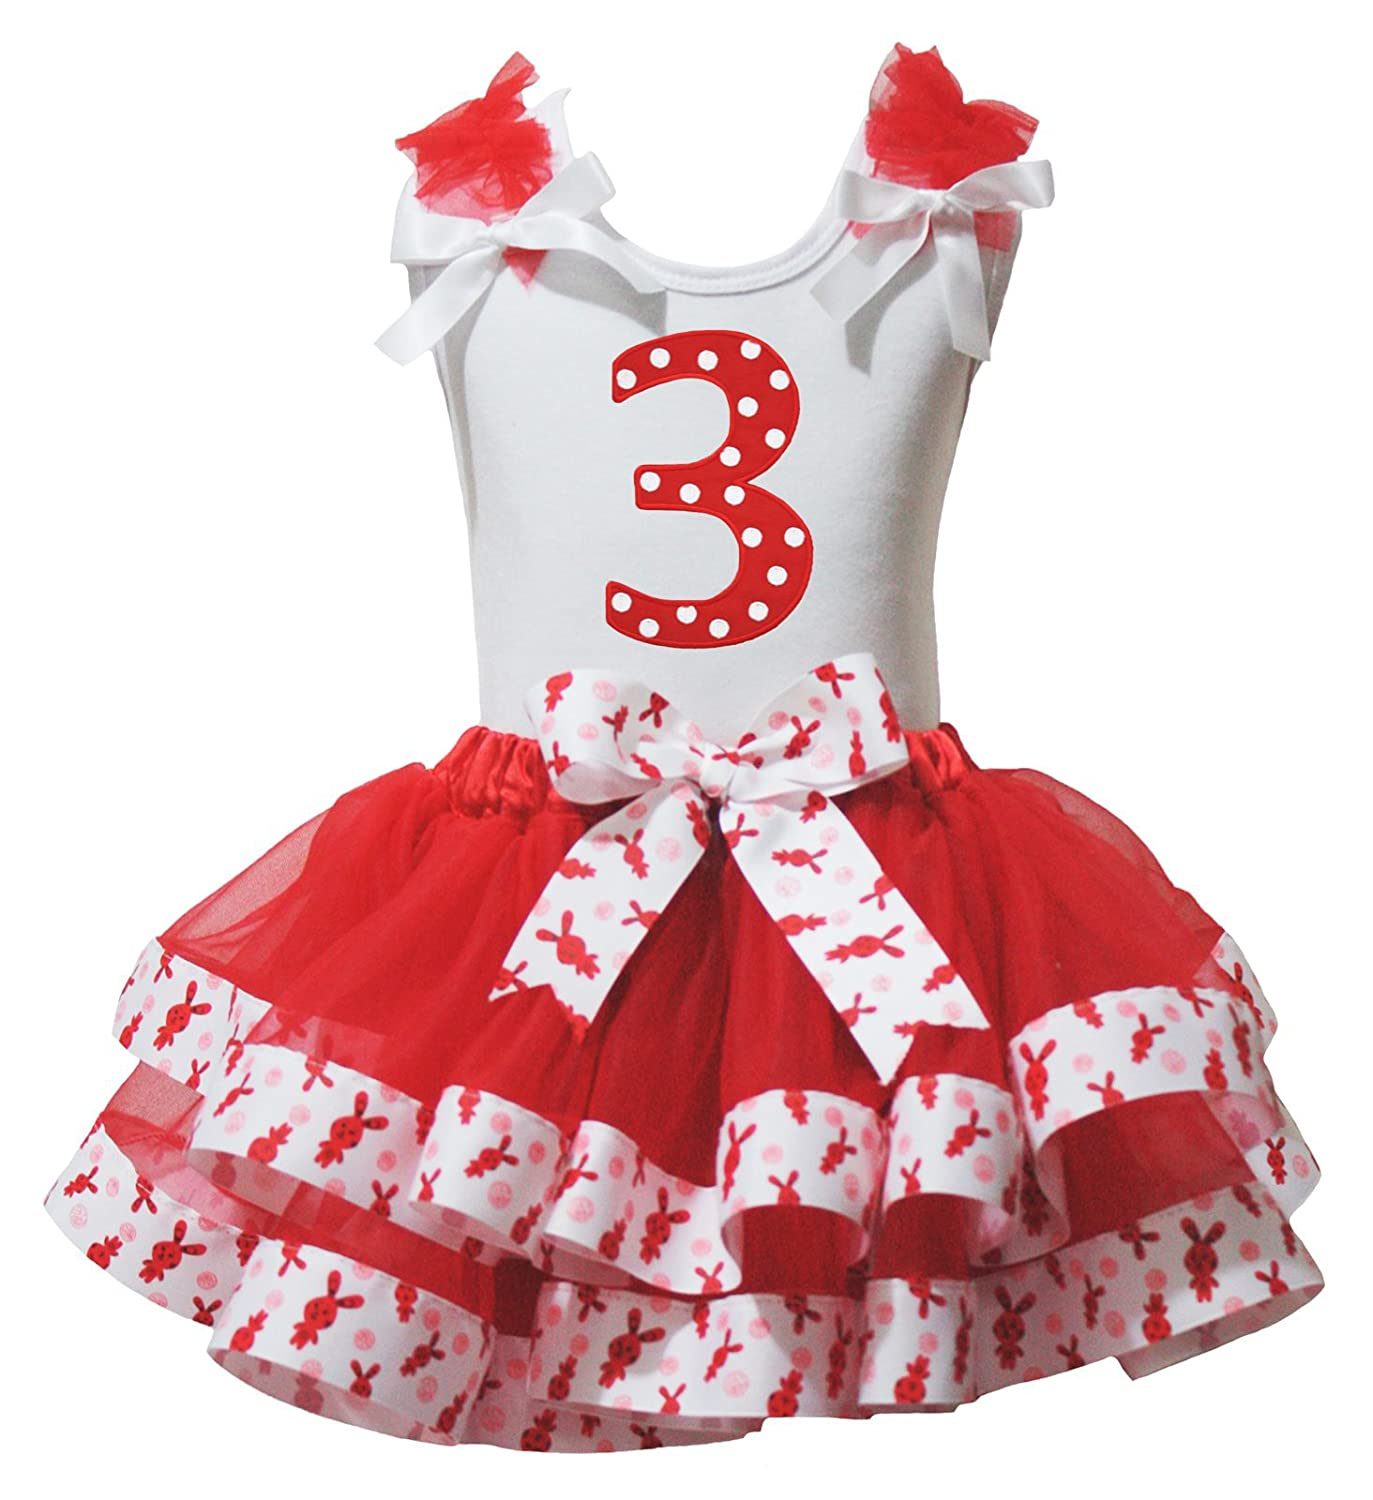 Easter Dress Polka Dots 3rd White Shirt Rabbits Ribbon Red Petal Skirt Set Nb-8y